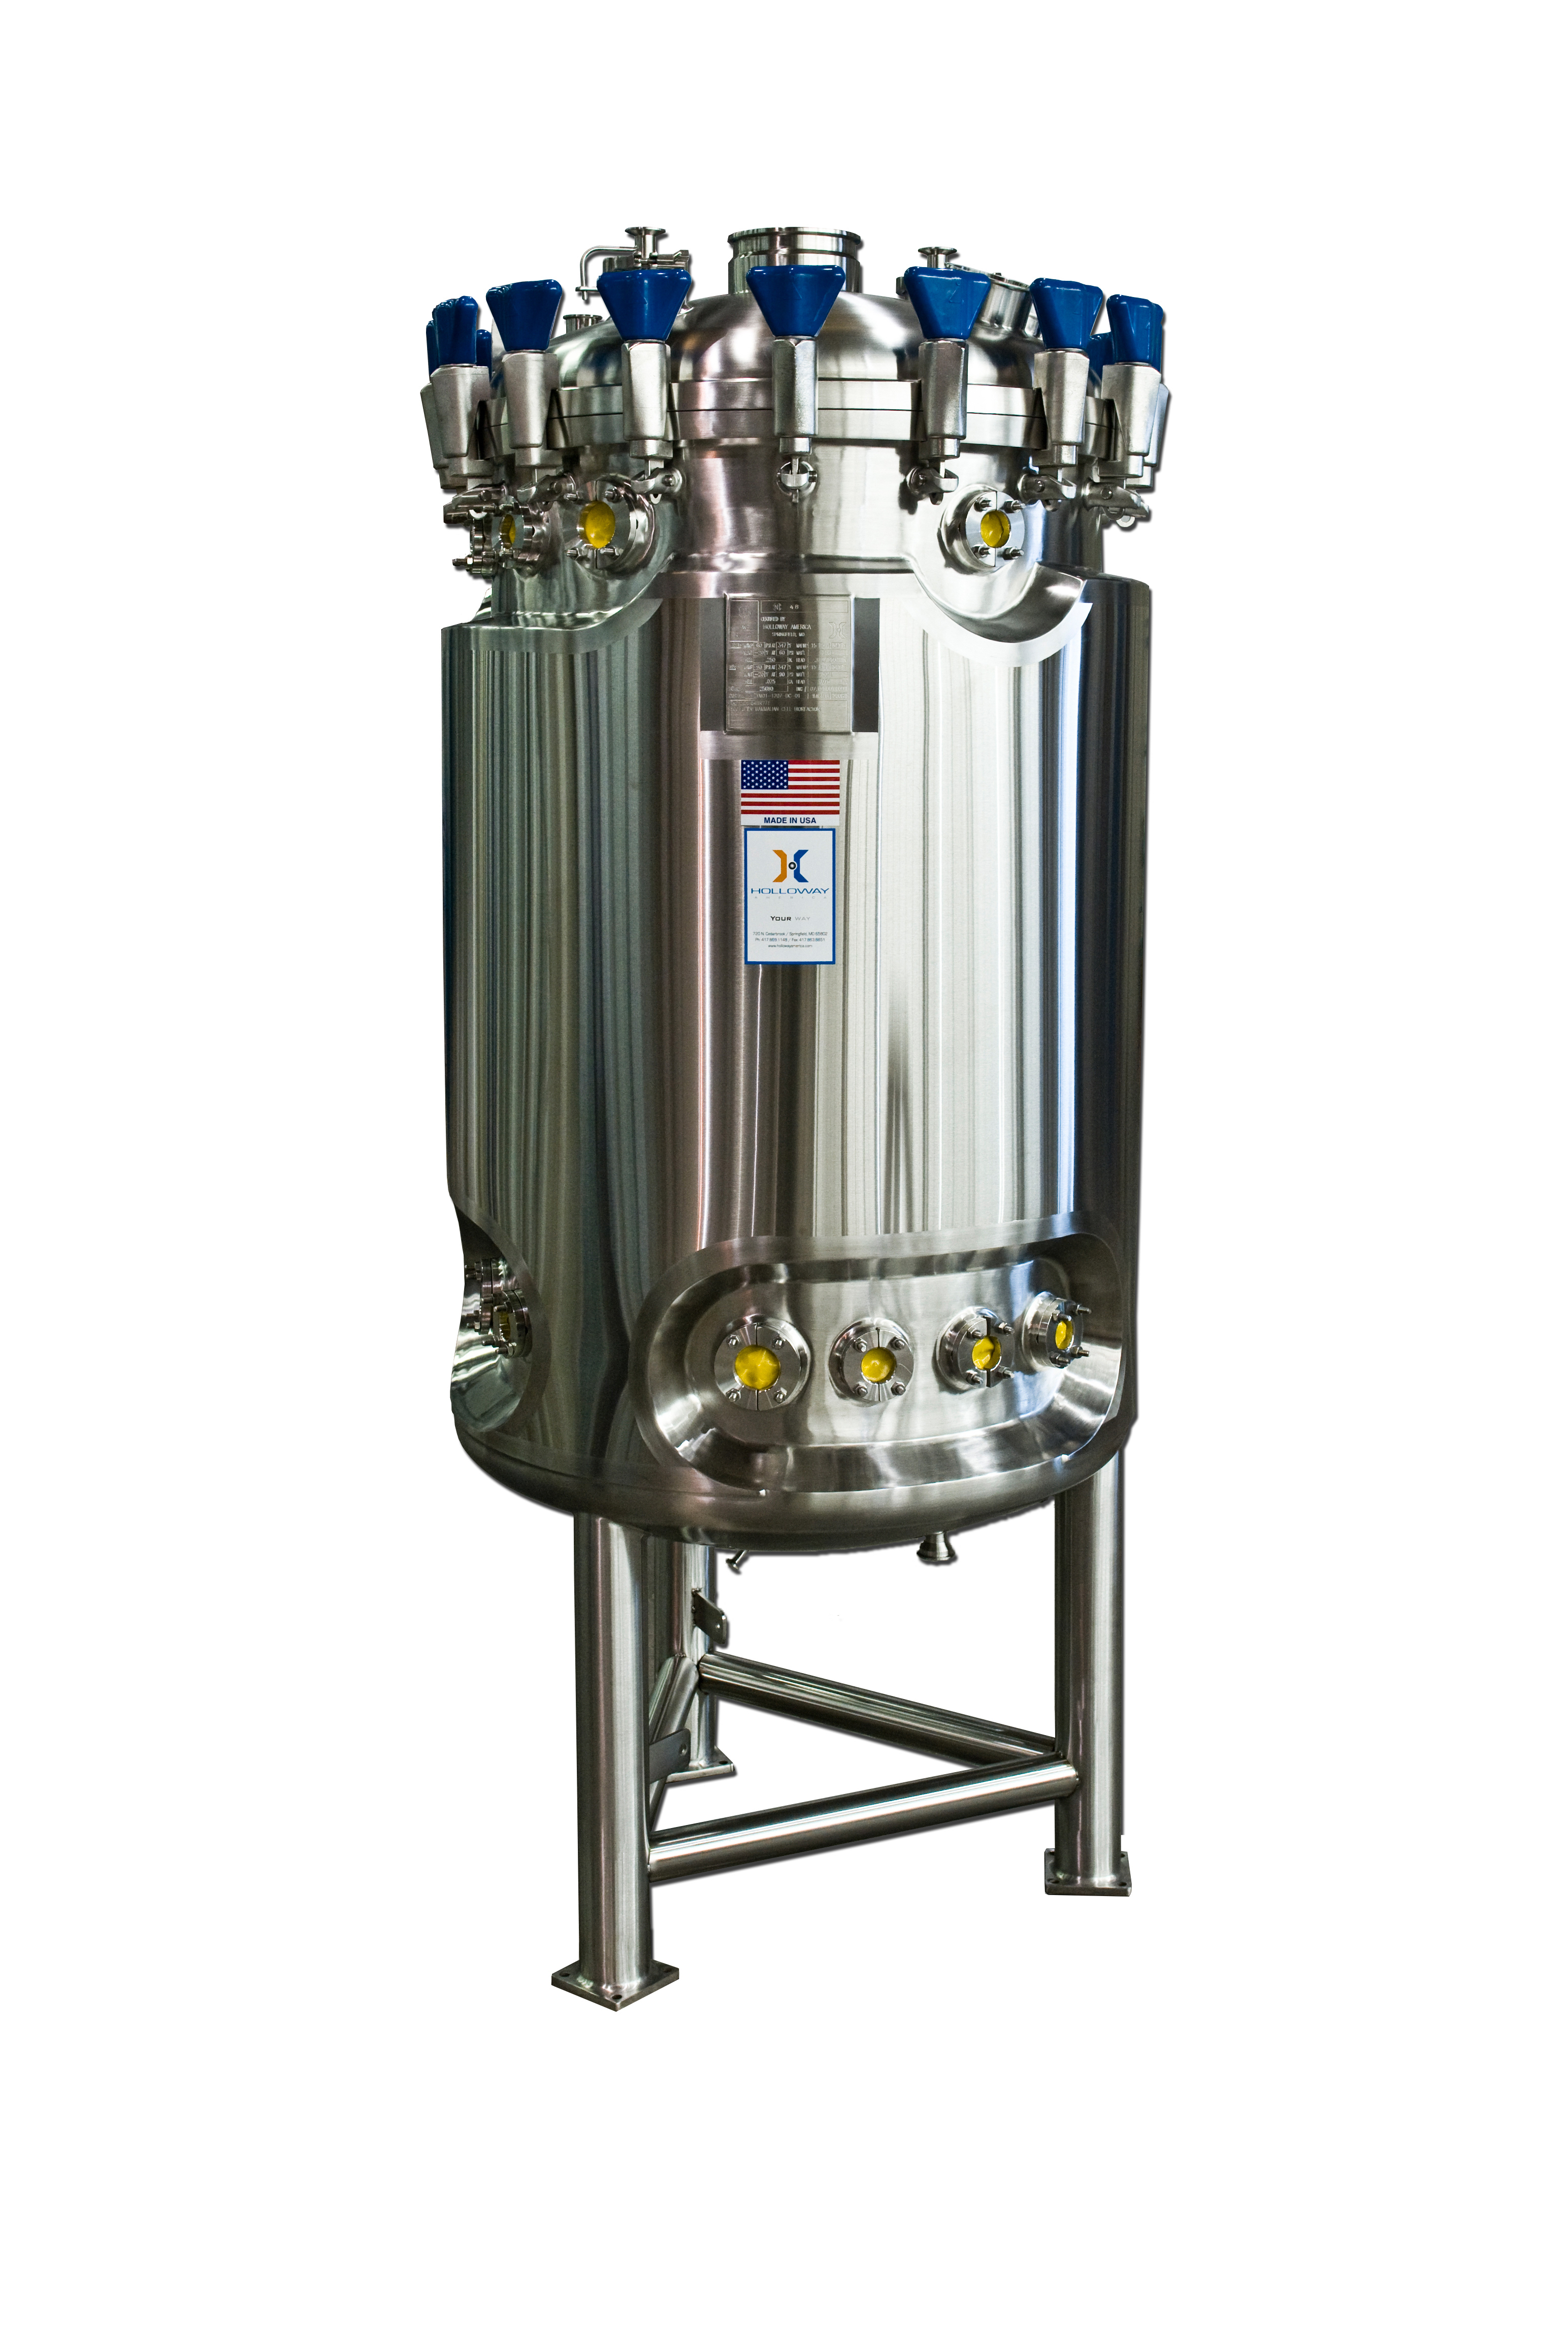 Like our other ASME pressure vessels, this bioreactor meets stainless steel ASME code.